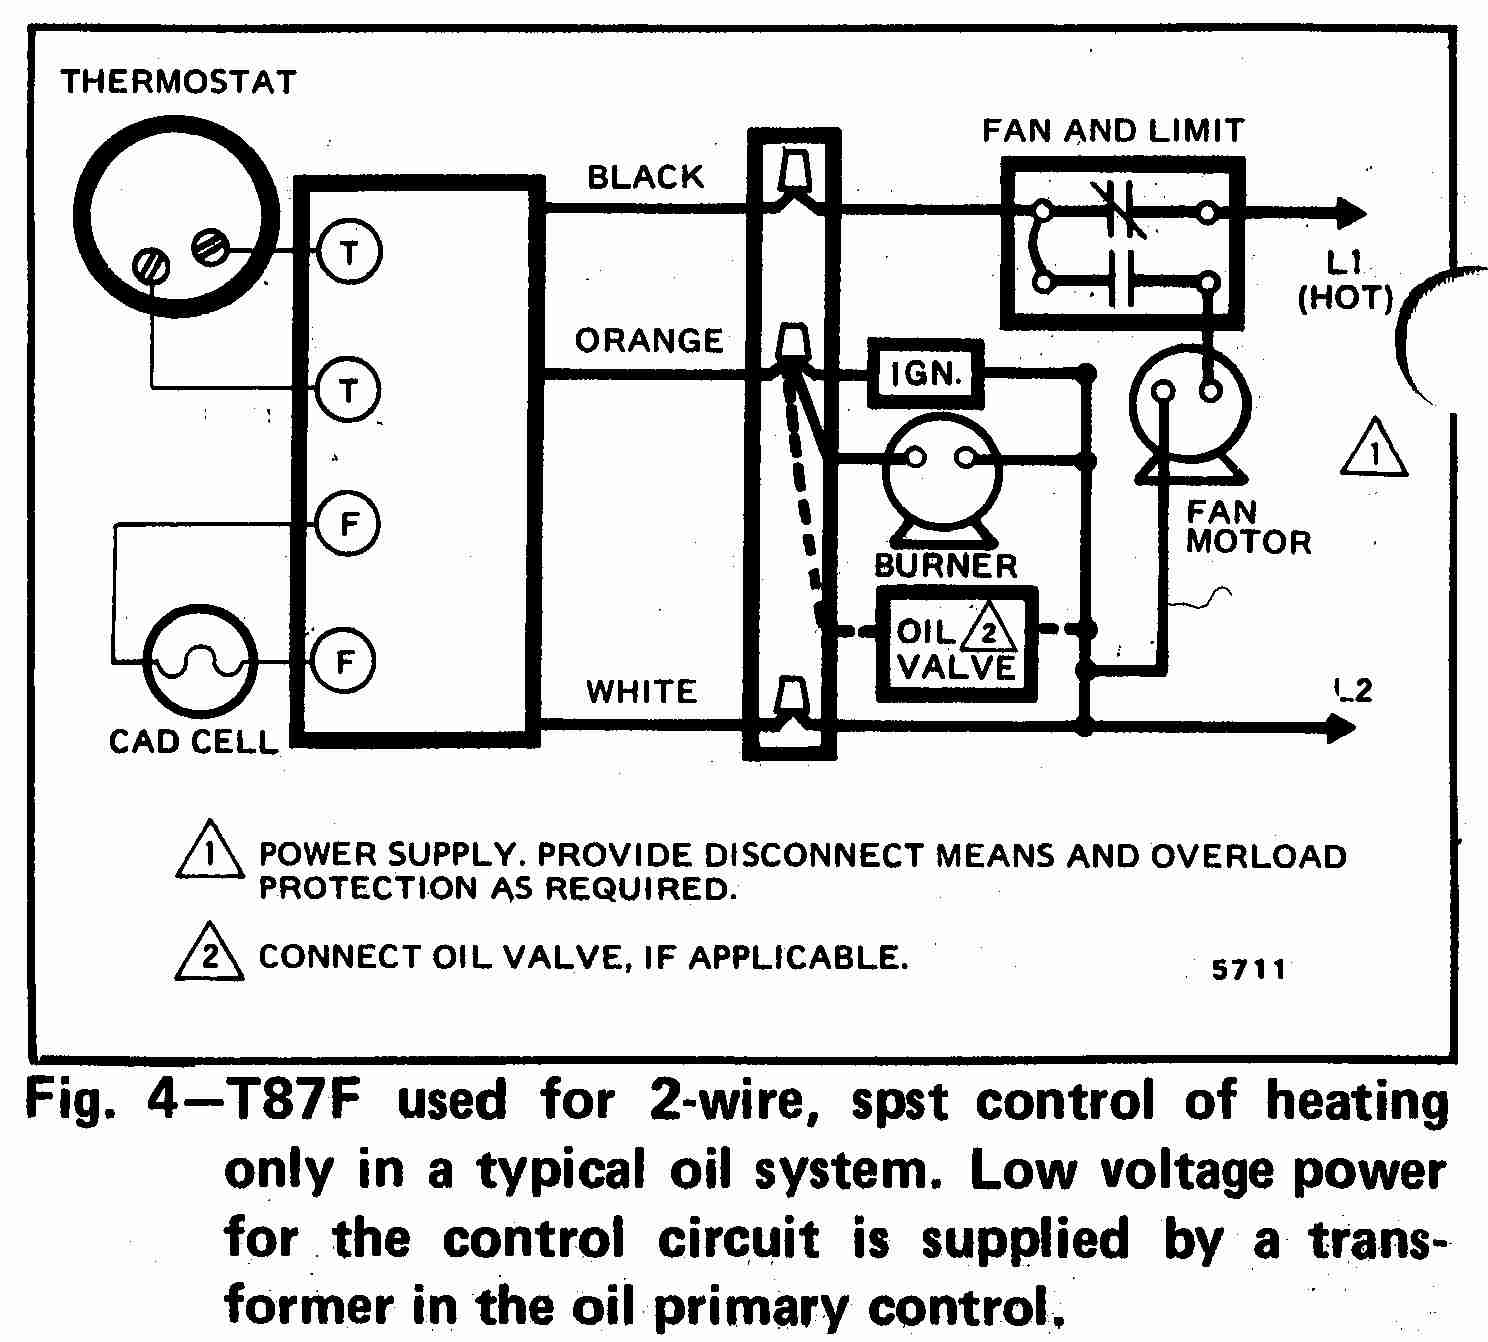 TT_T87F_0002_2W_DJF room thermostat wiring diagrams for hvac systems wiring diagram for thermostat at virtualis.co